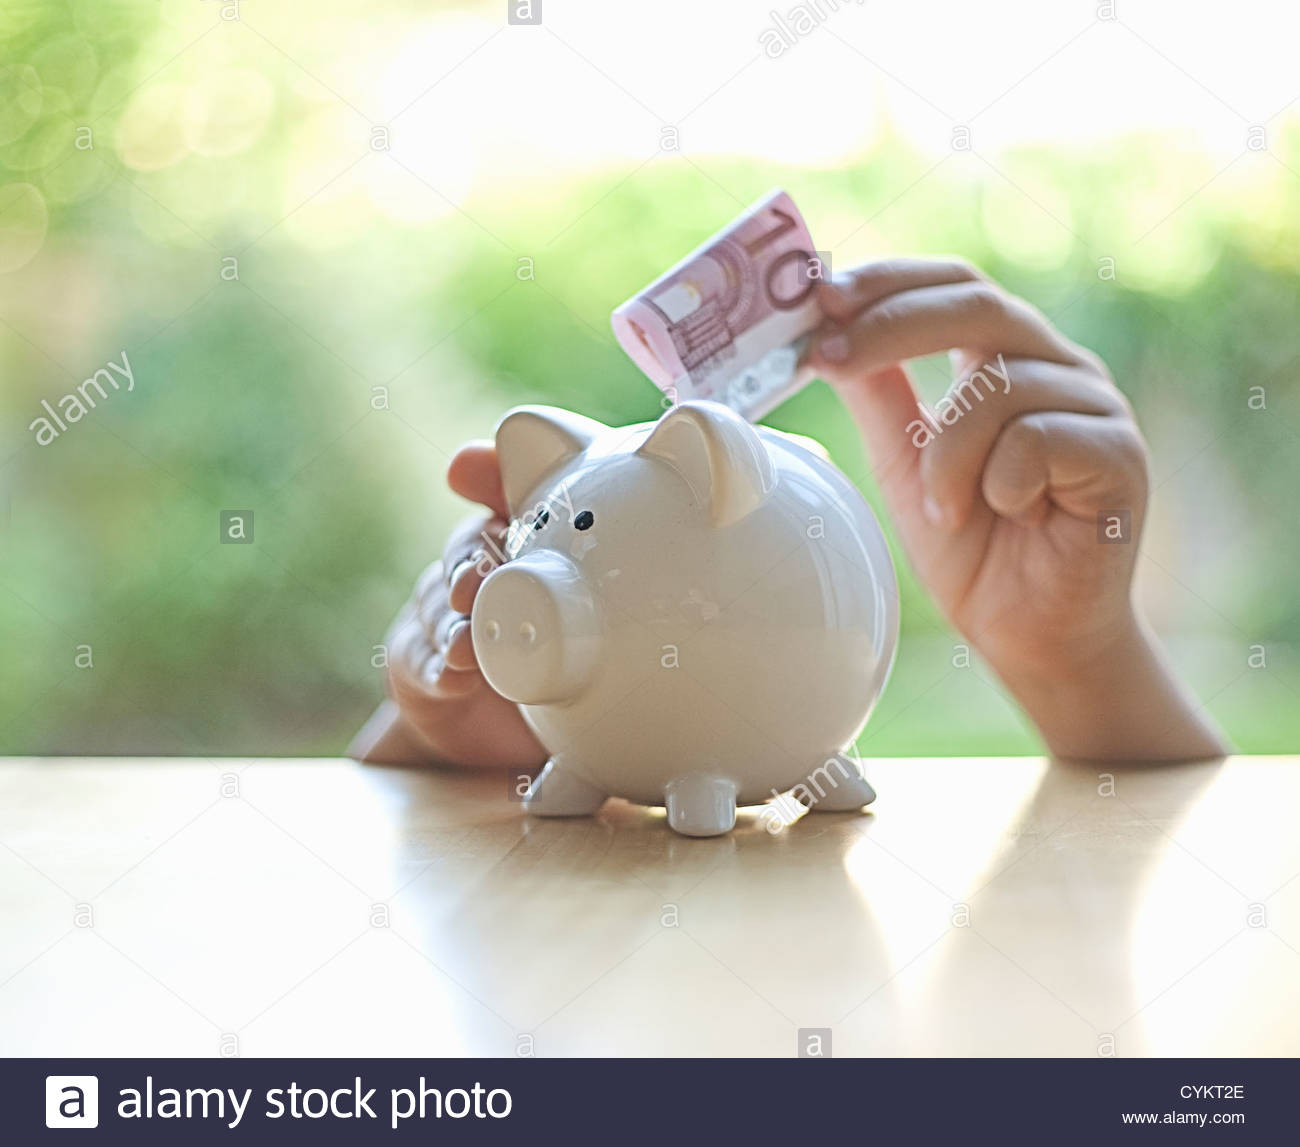 Hang putting Euro note in piggy bank - Stock Image